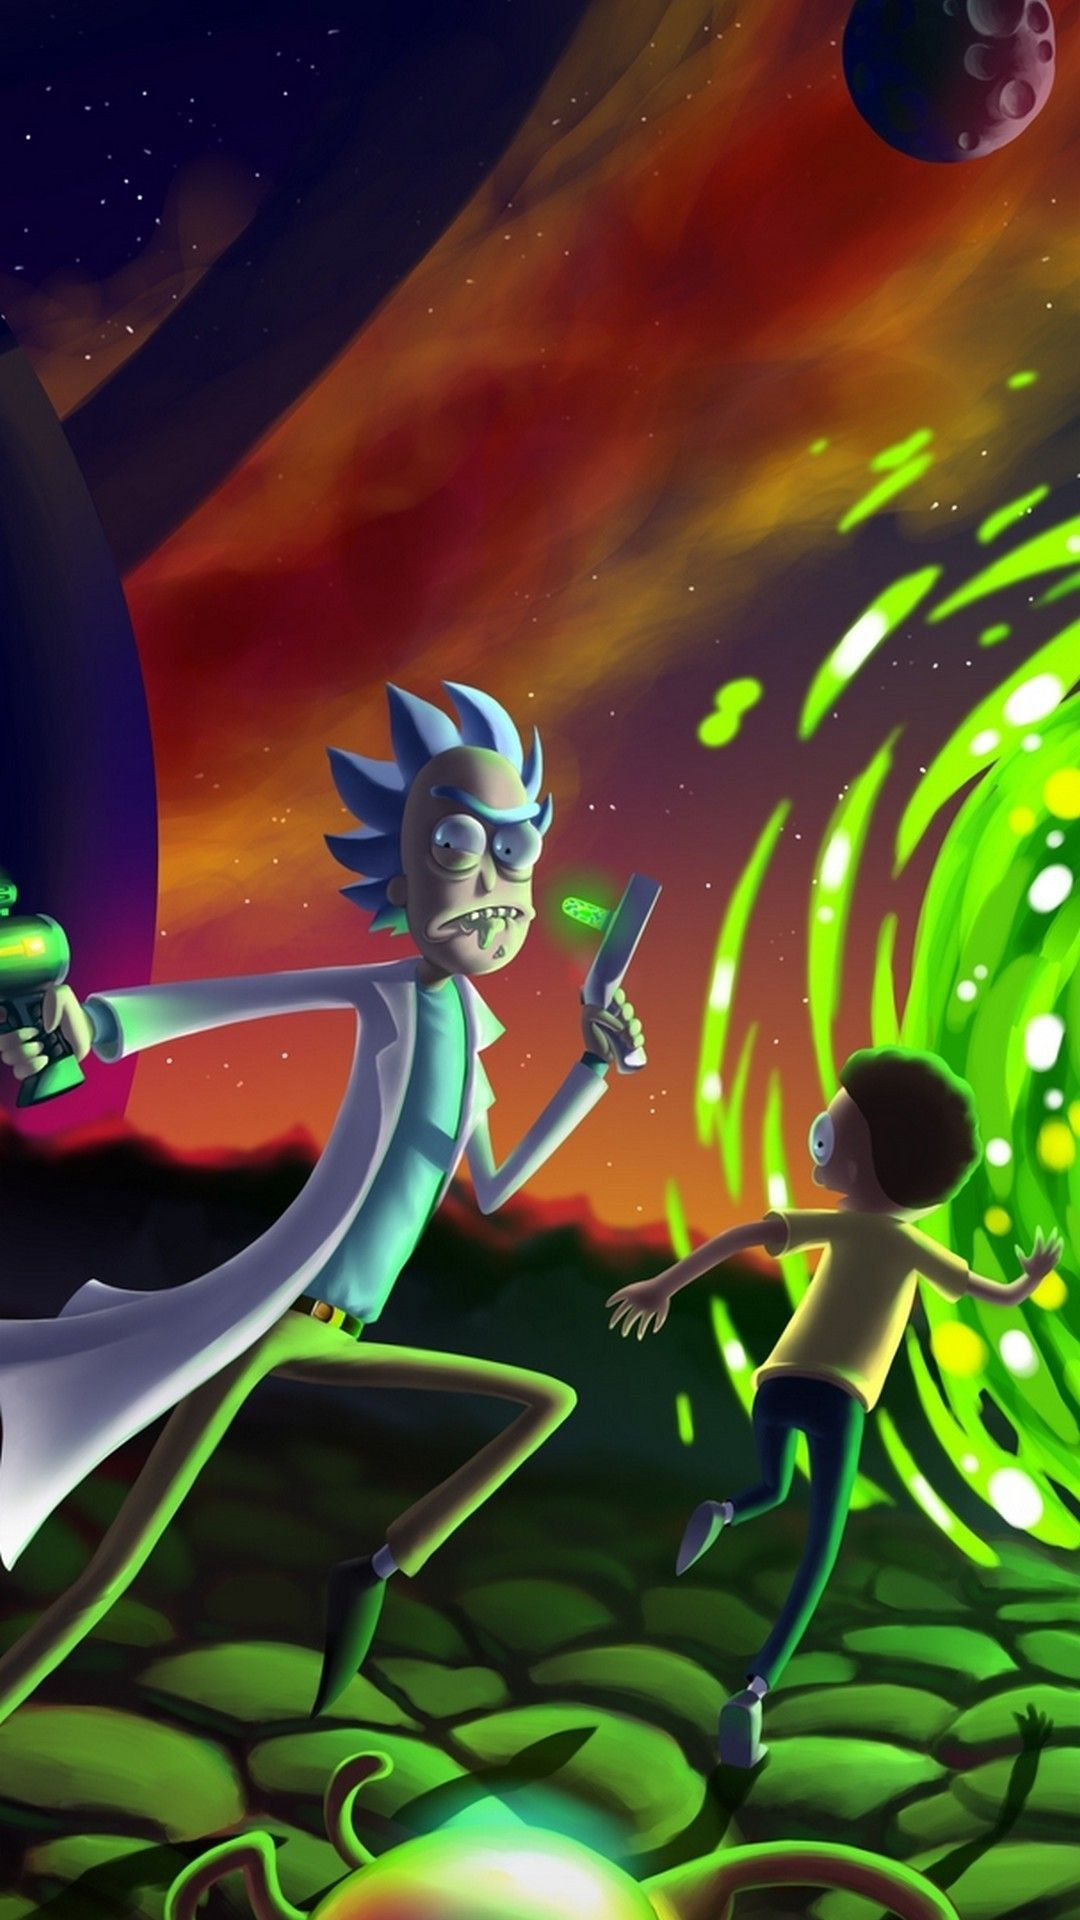 Rick And Morty Android Wallpaper Best Movie Poster Within Rick Y Morty Wallpaper Android In 2020 Rick And Morty Poster Cartoon Wallpaper Hd Rick And Morty